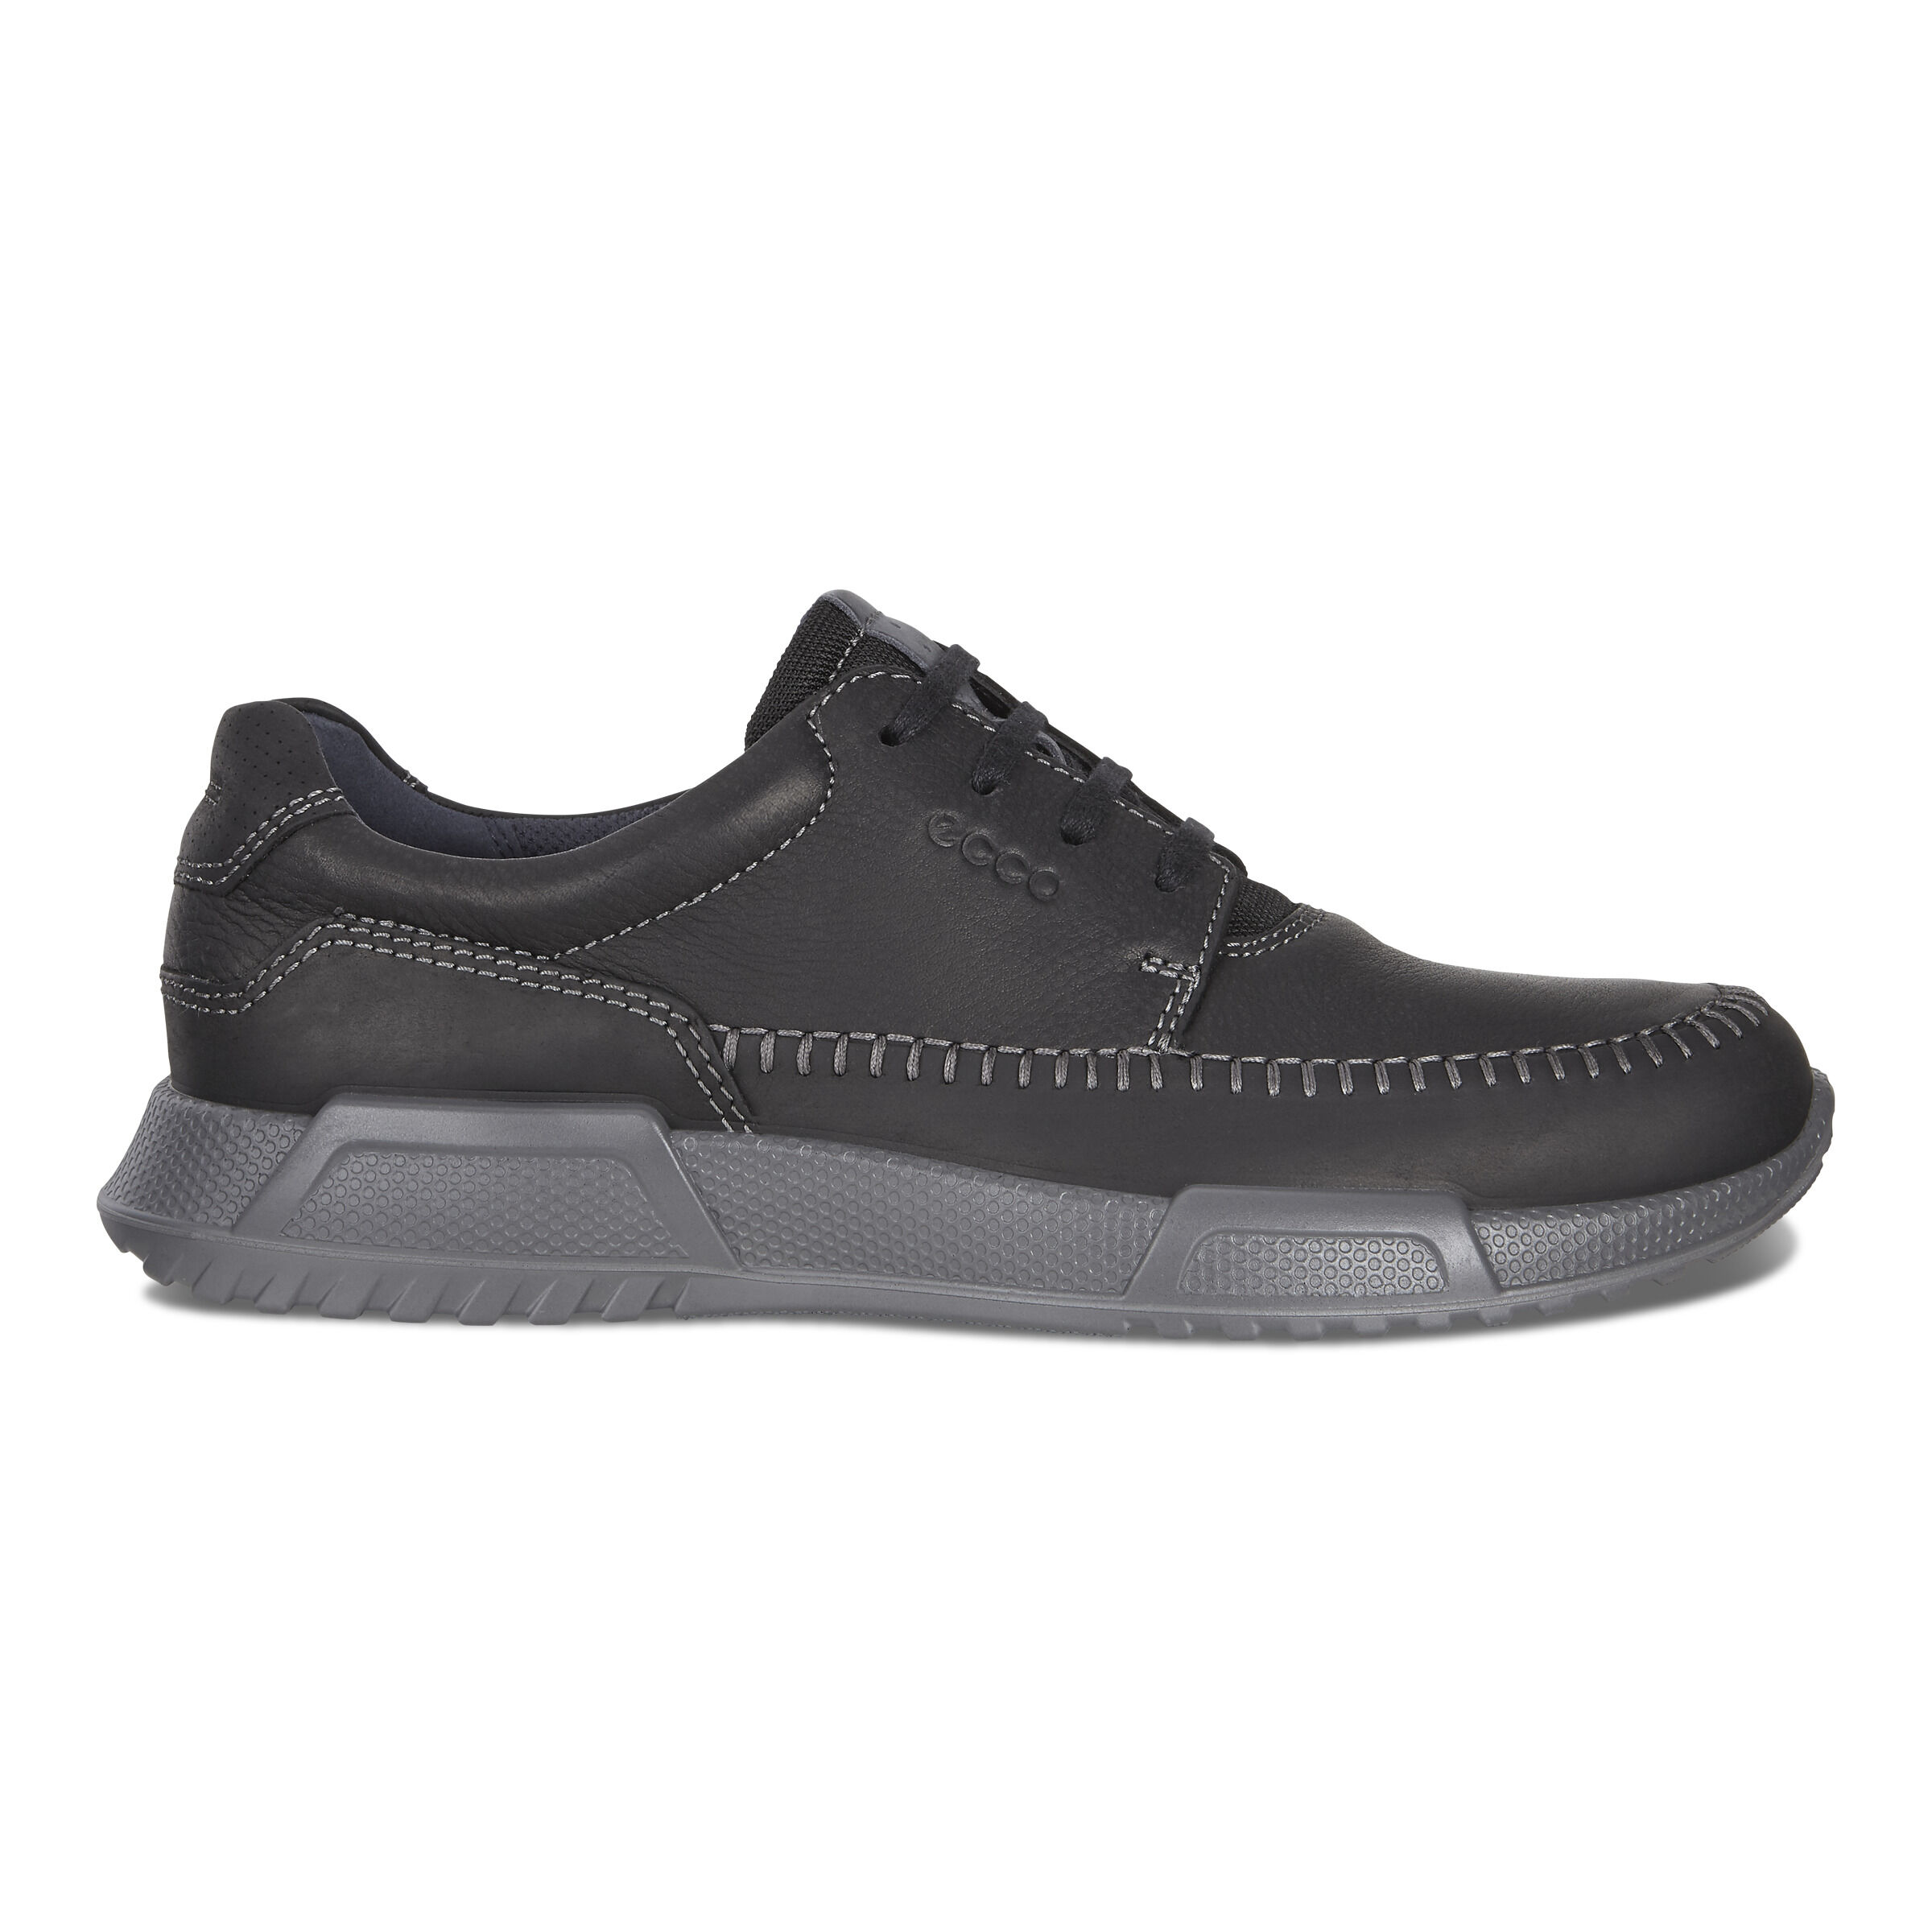 ECCO Luca Moc | Men's Casual Shoes